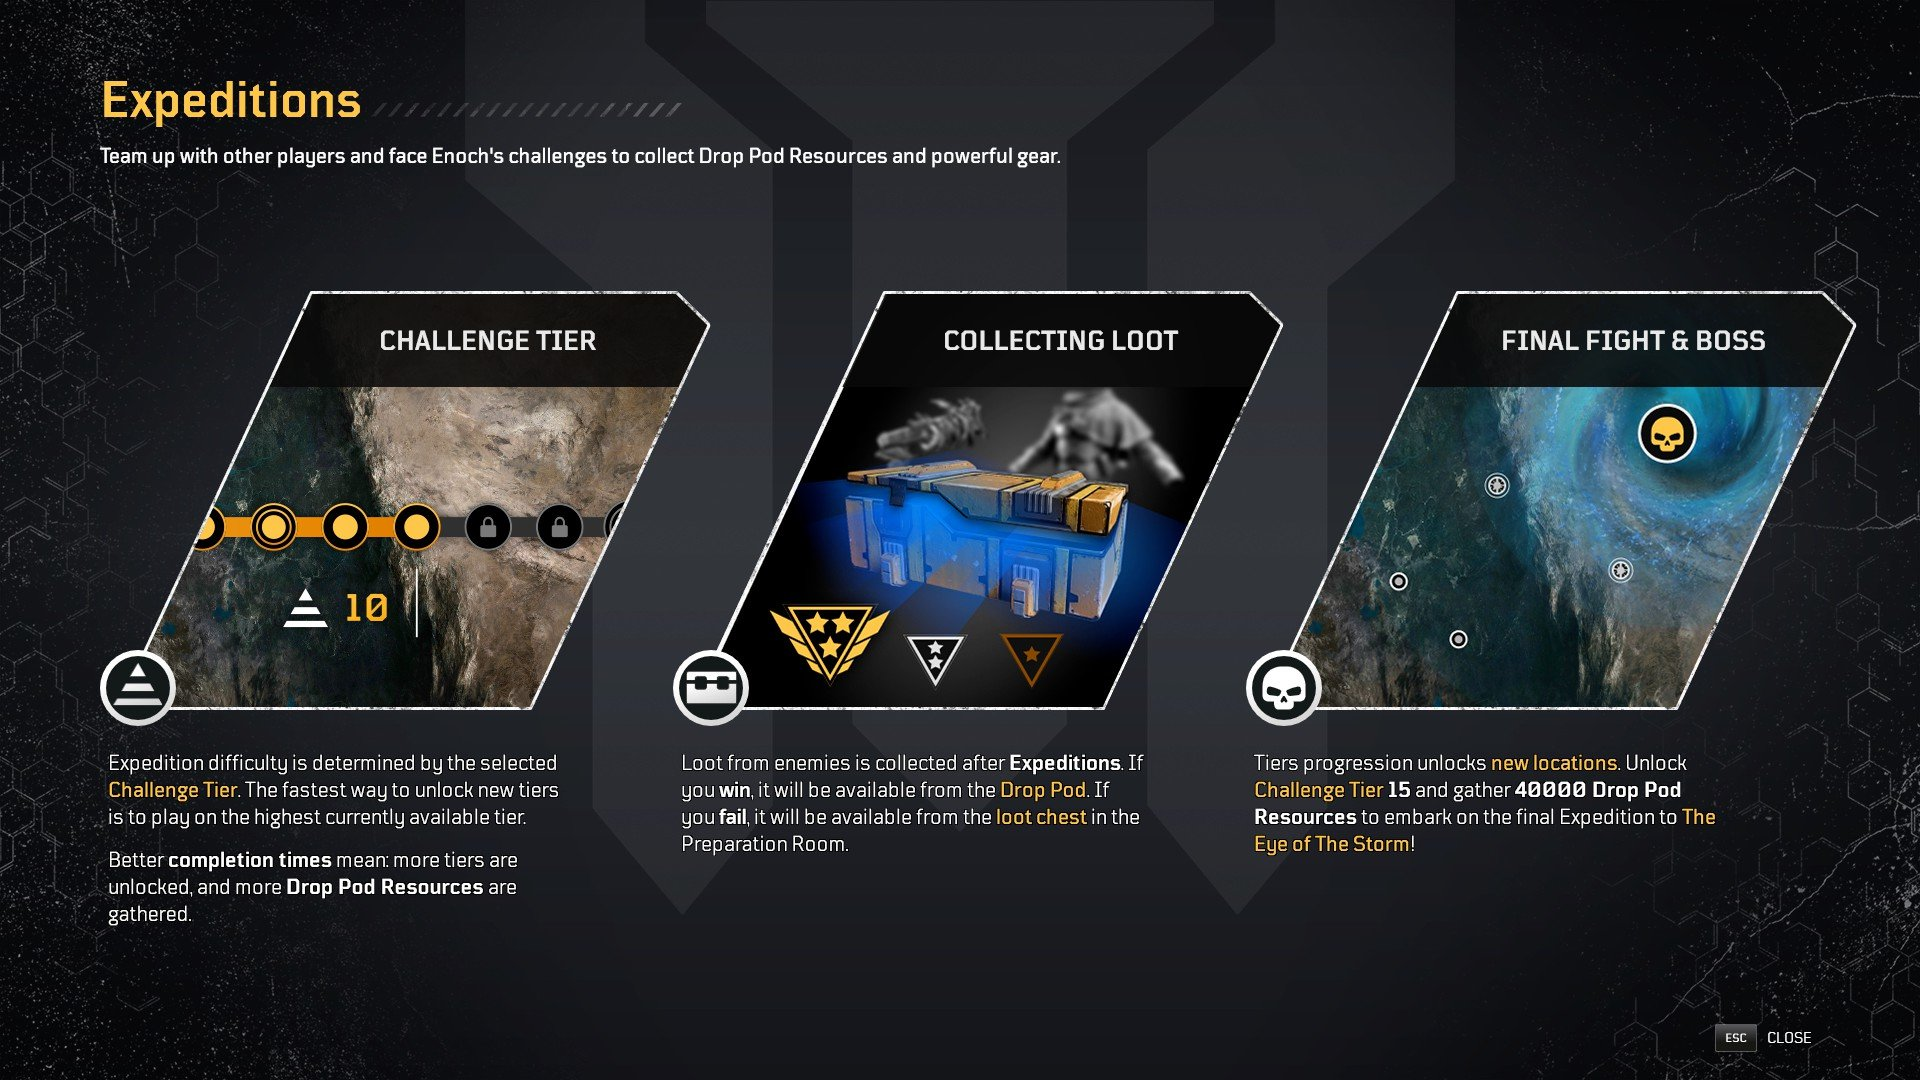 Outriders - Expeditions Explained